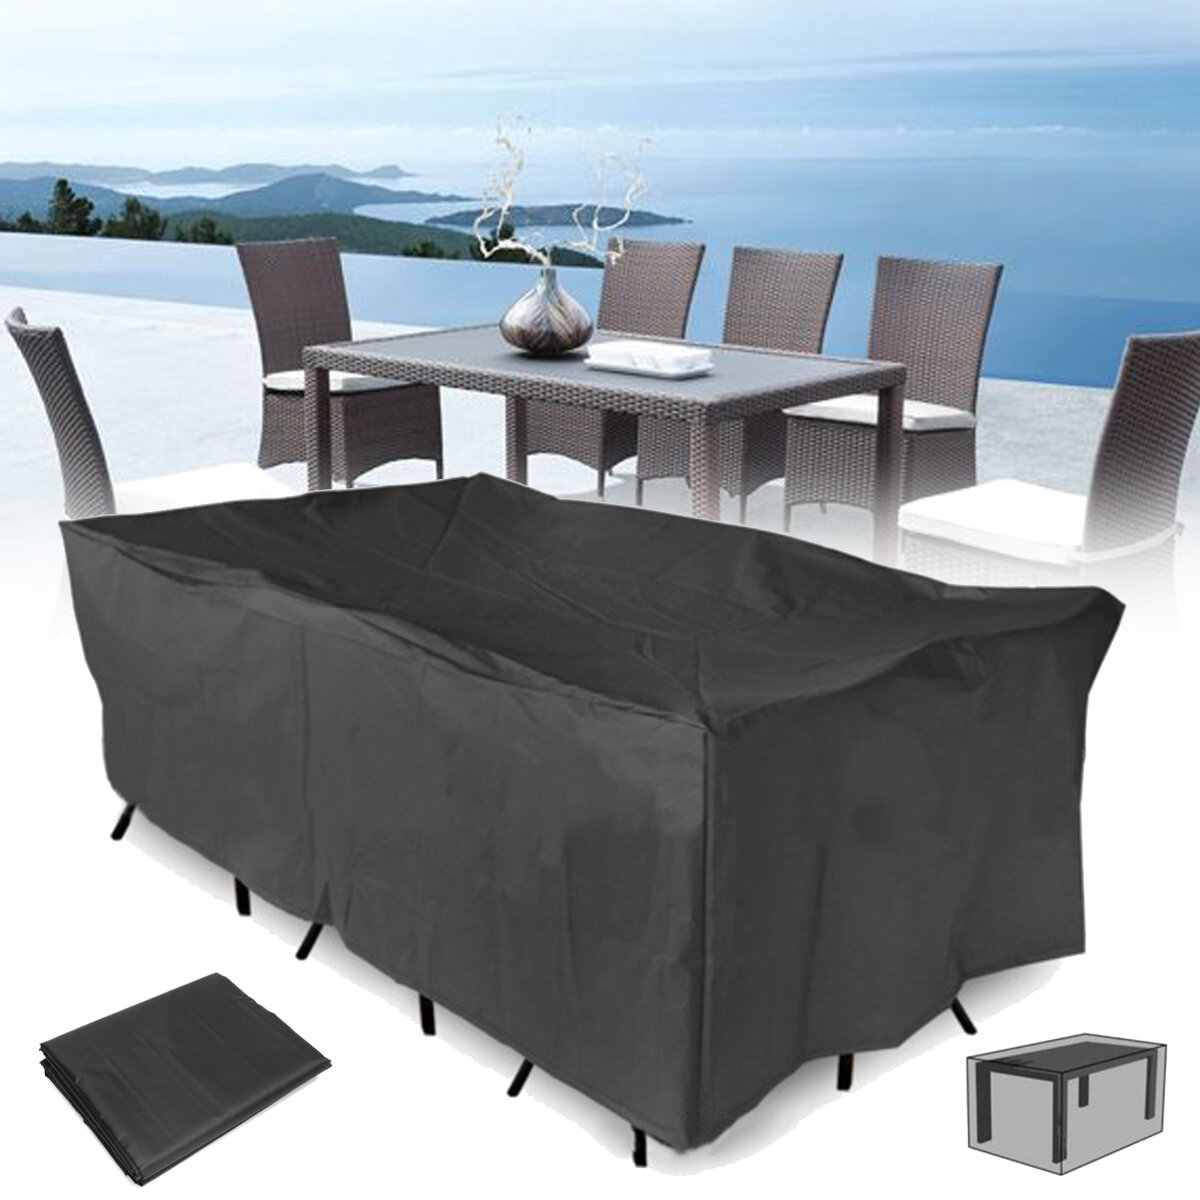 320x220x70cm Outdoor Garden Patio Furniture Waterproof Dust Cover Table Chair Sun Shelter Cod